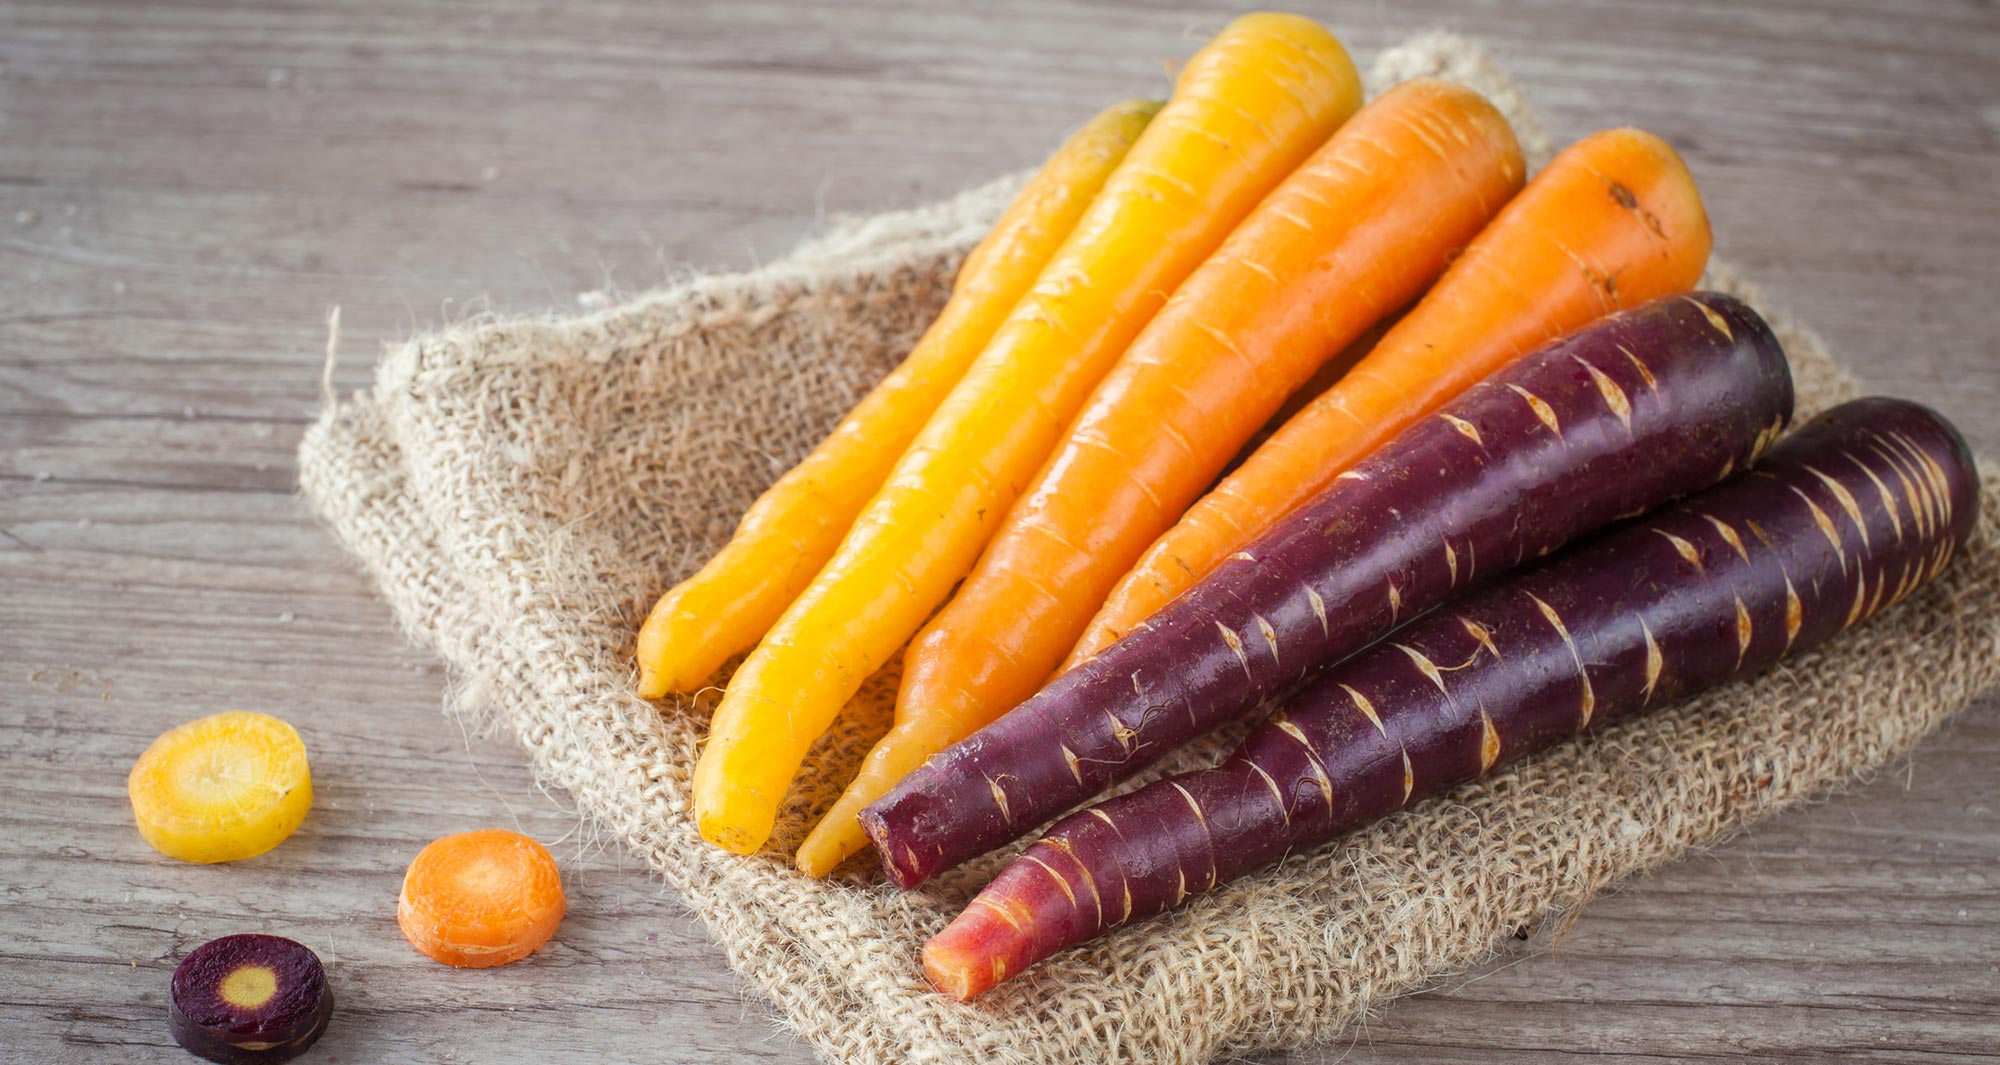 orange and purple carrots